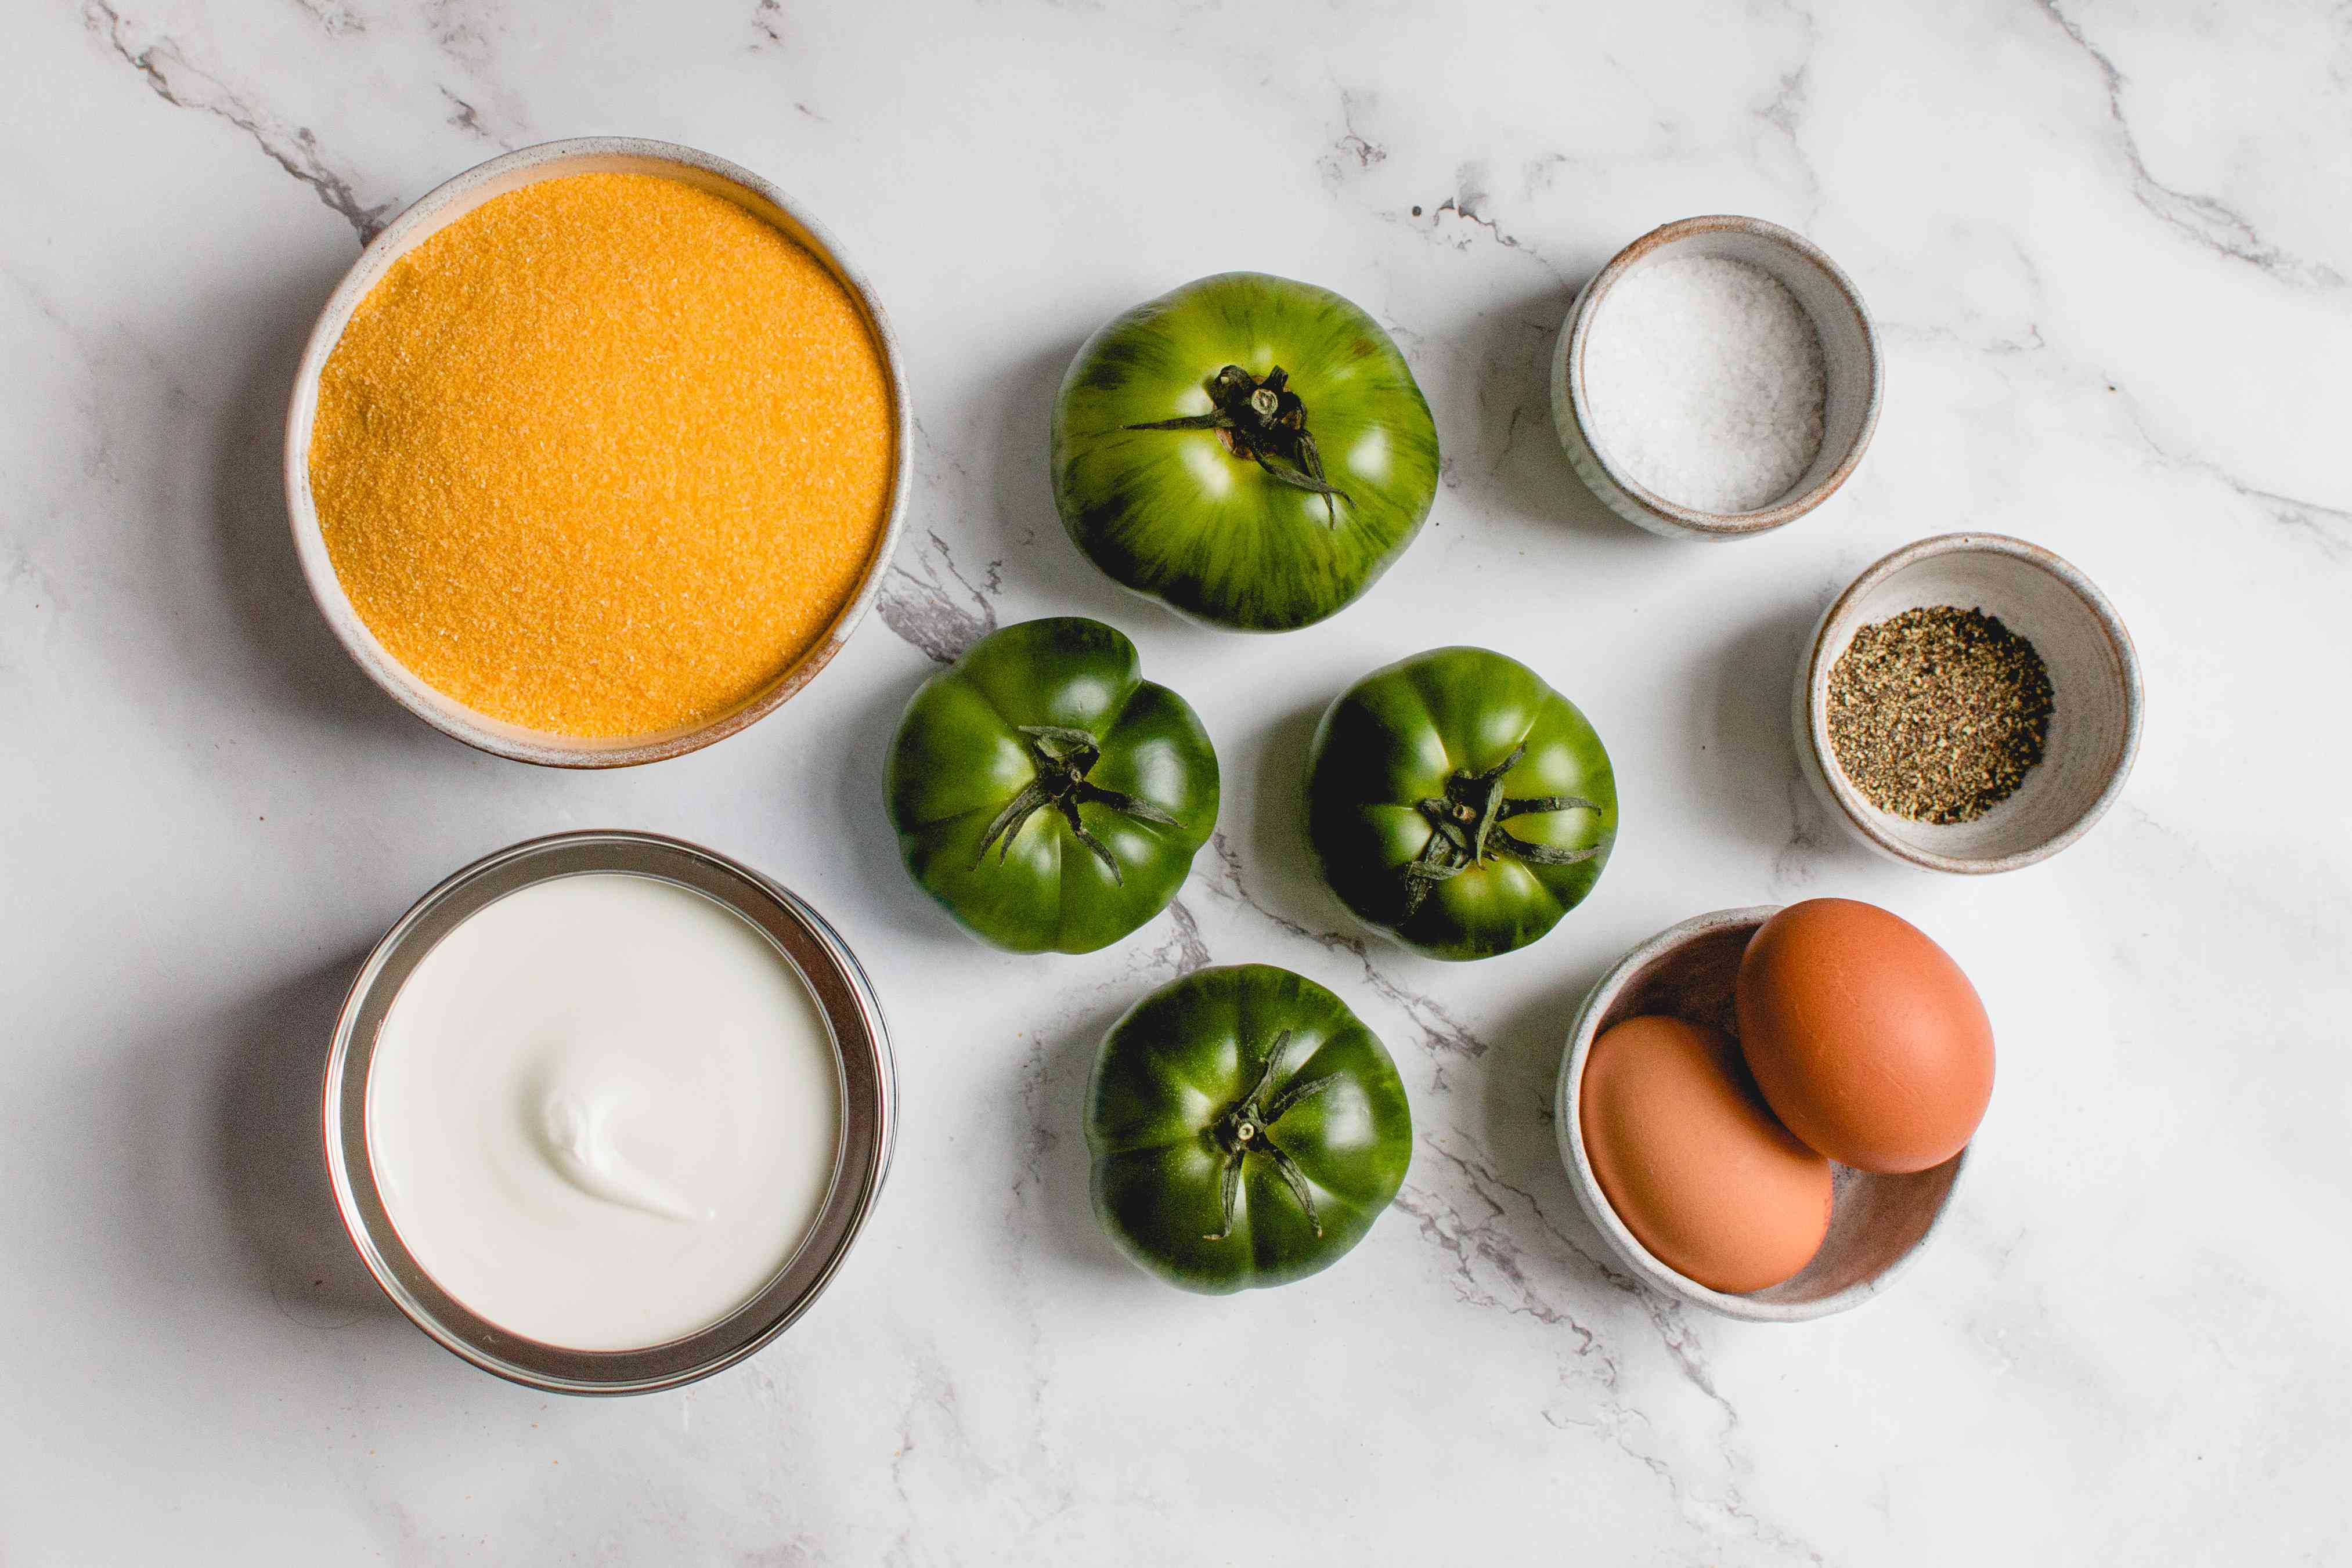 Classic Fried Green Tomatoes ingredients